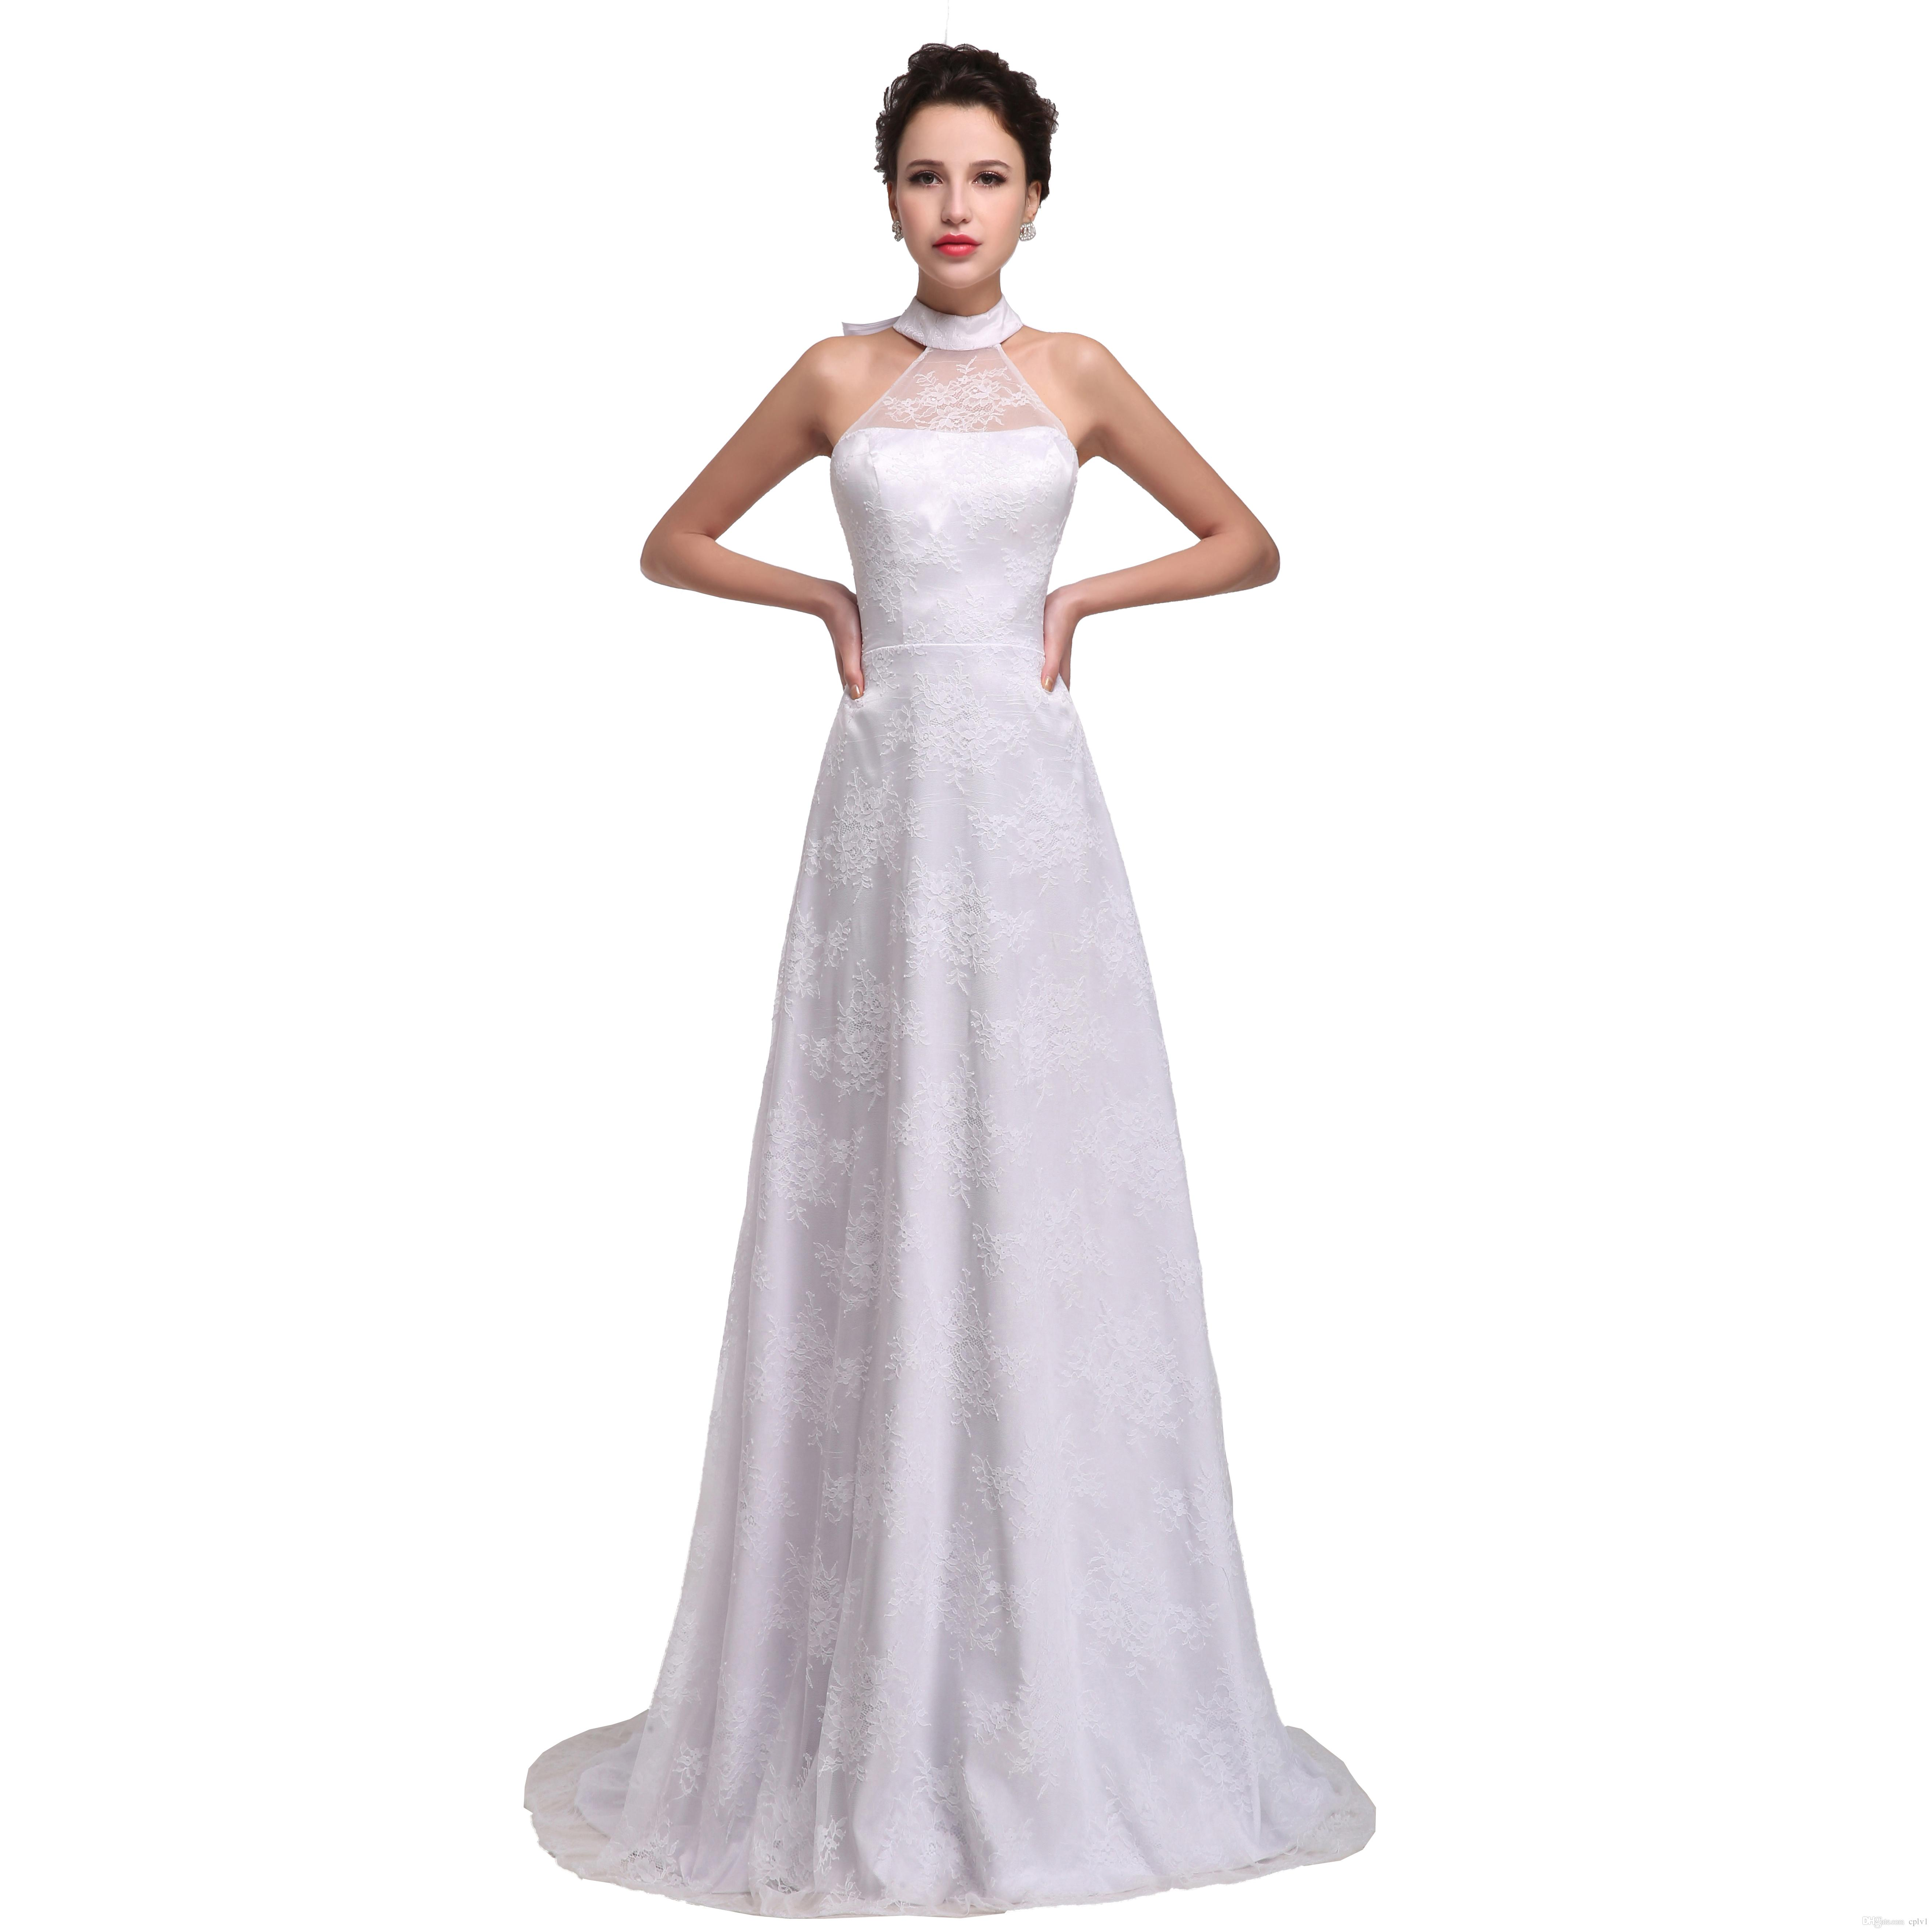 Discount 2019 Cheap Wedding Dresses White Lace Halter Wedding Gown A Line Read Pictures Beach Plus Size Wedding Dresse With Bow Cheap Bridal Gowns